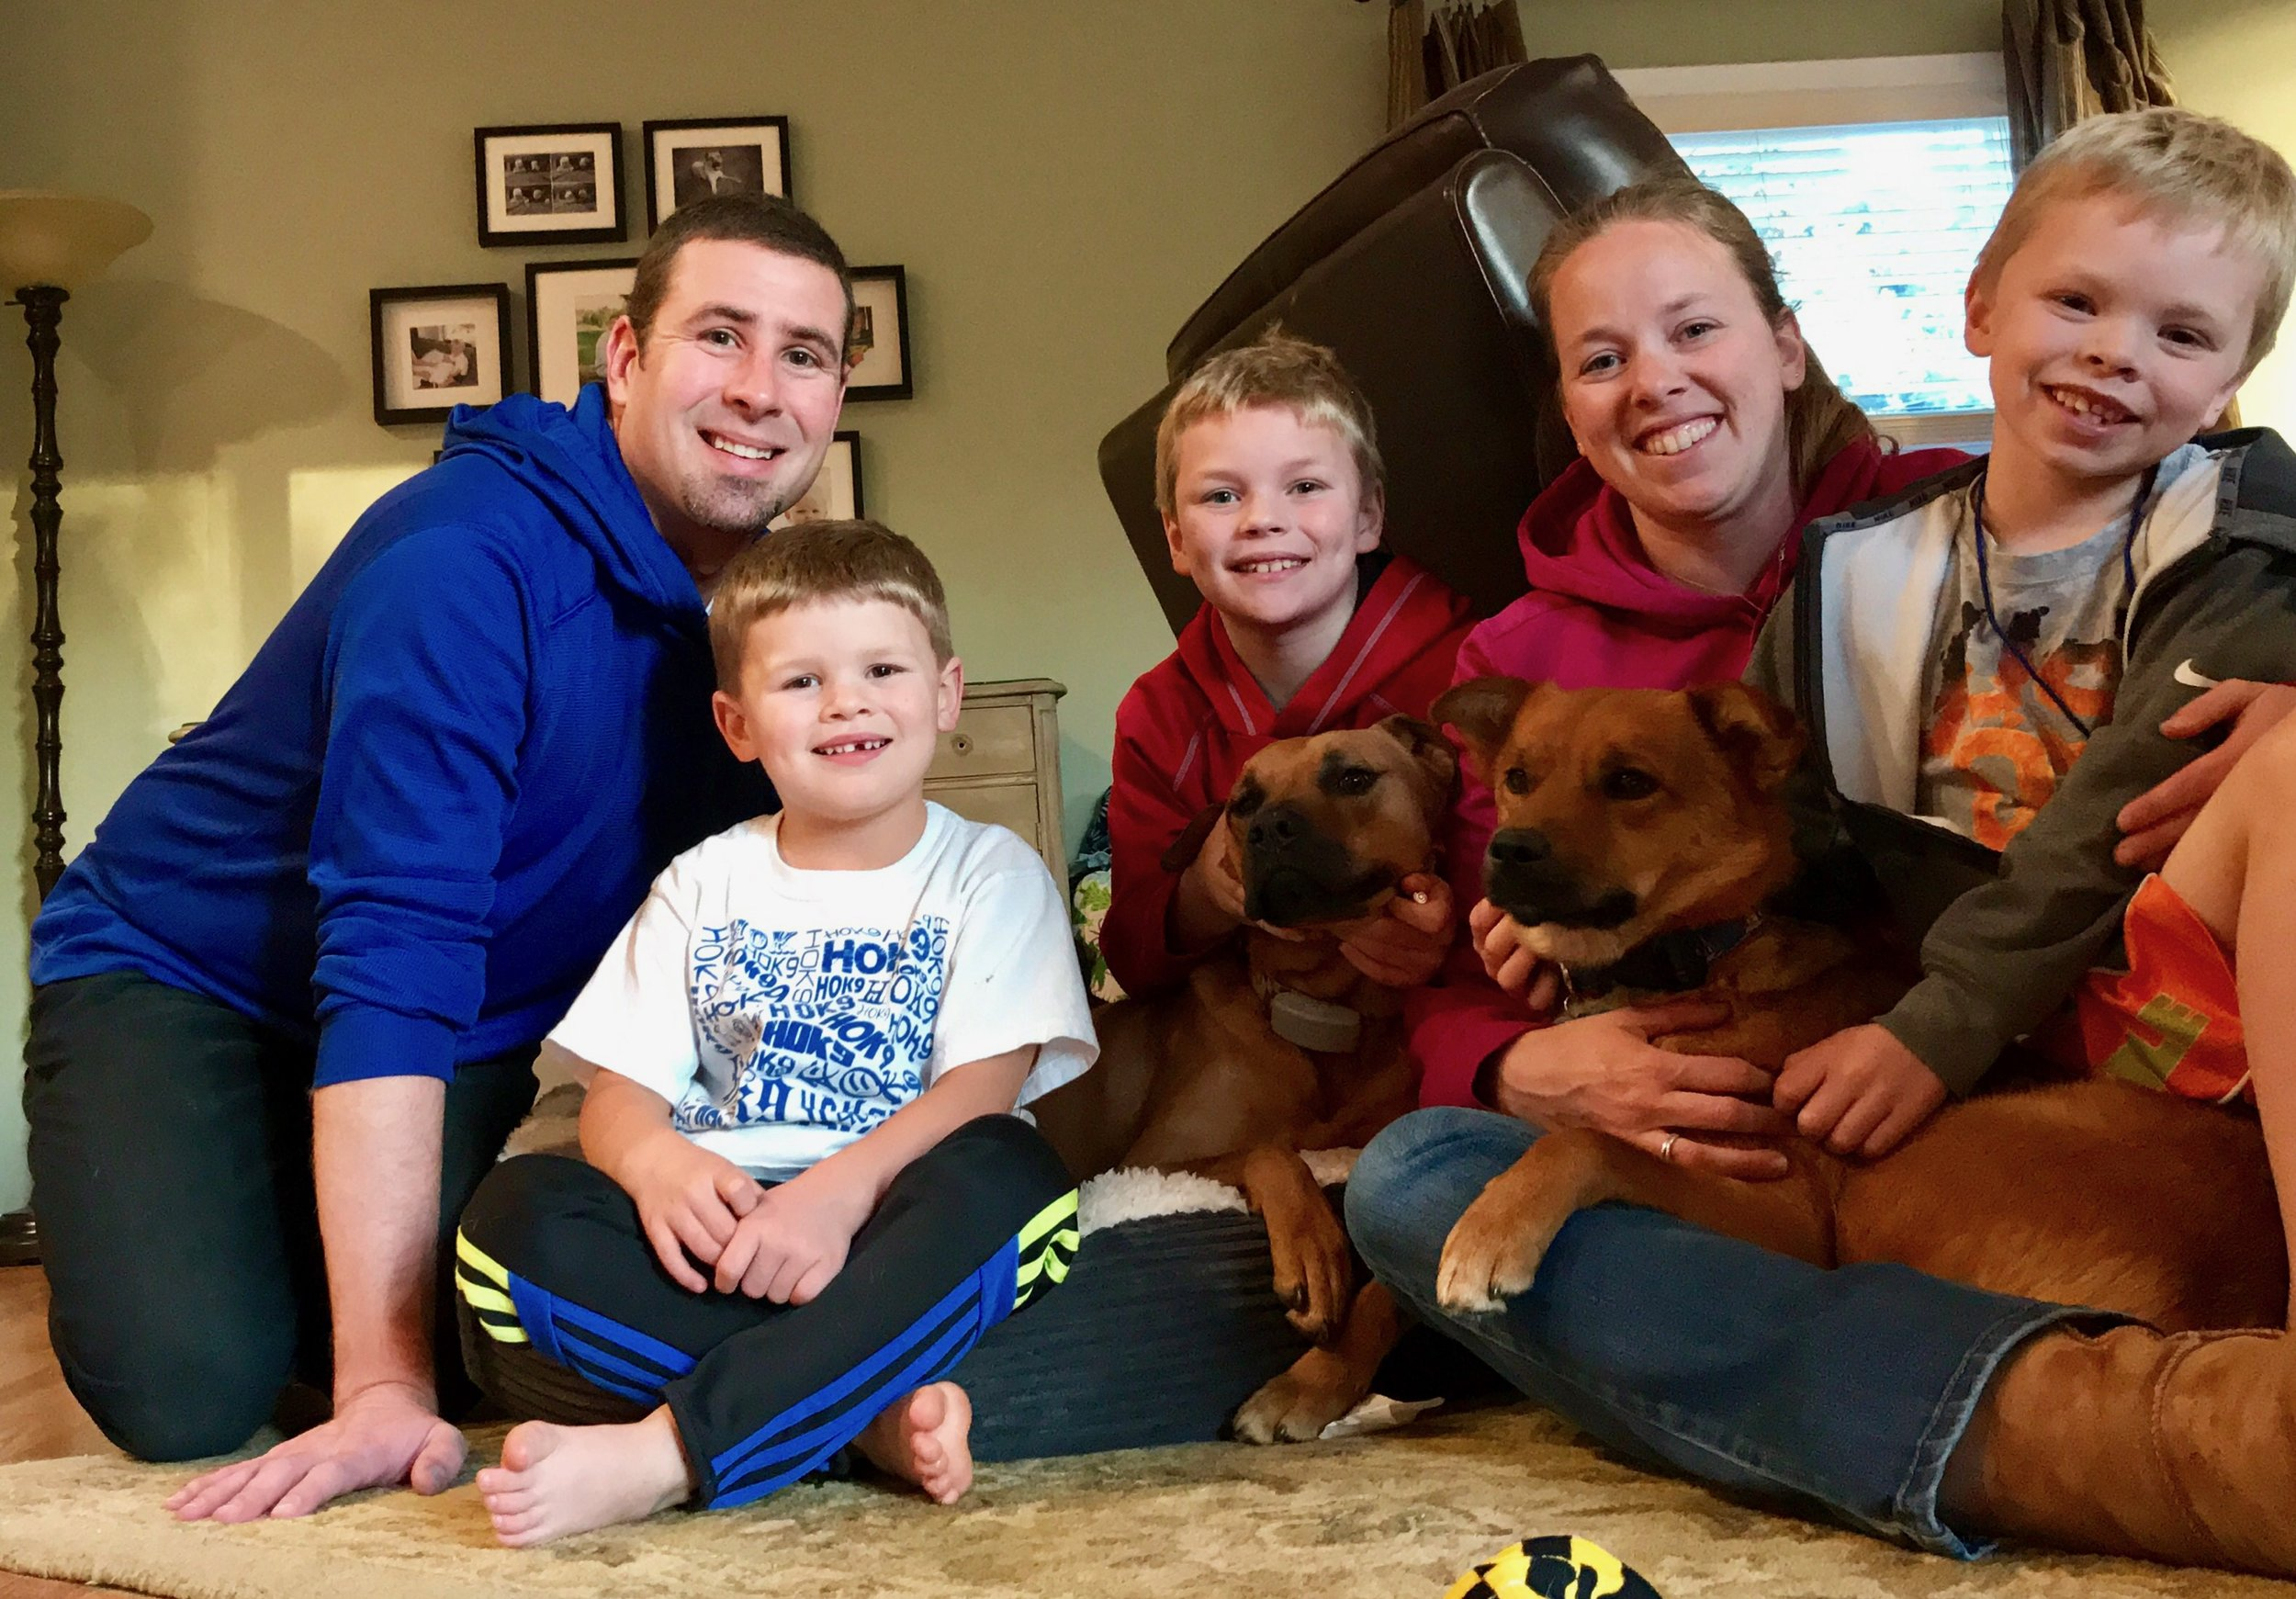 Look at all the love and fun Aiden (far right) is going to have in his home with the Merritt family!